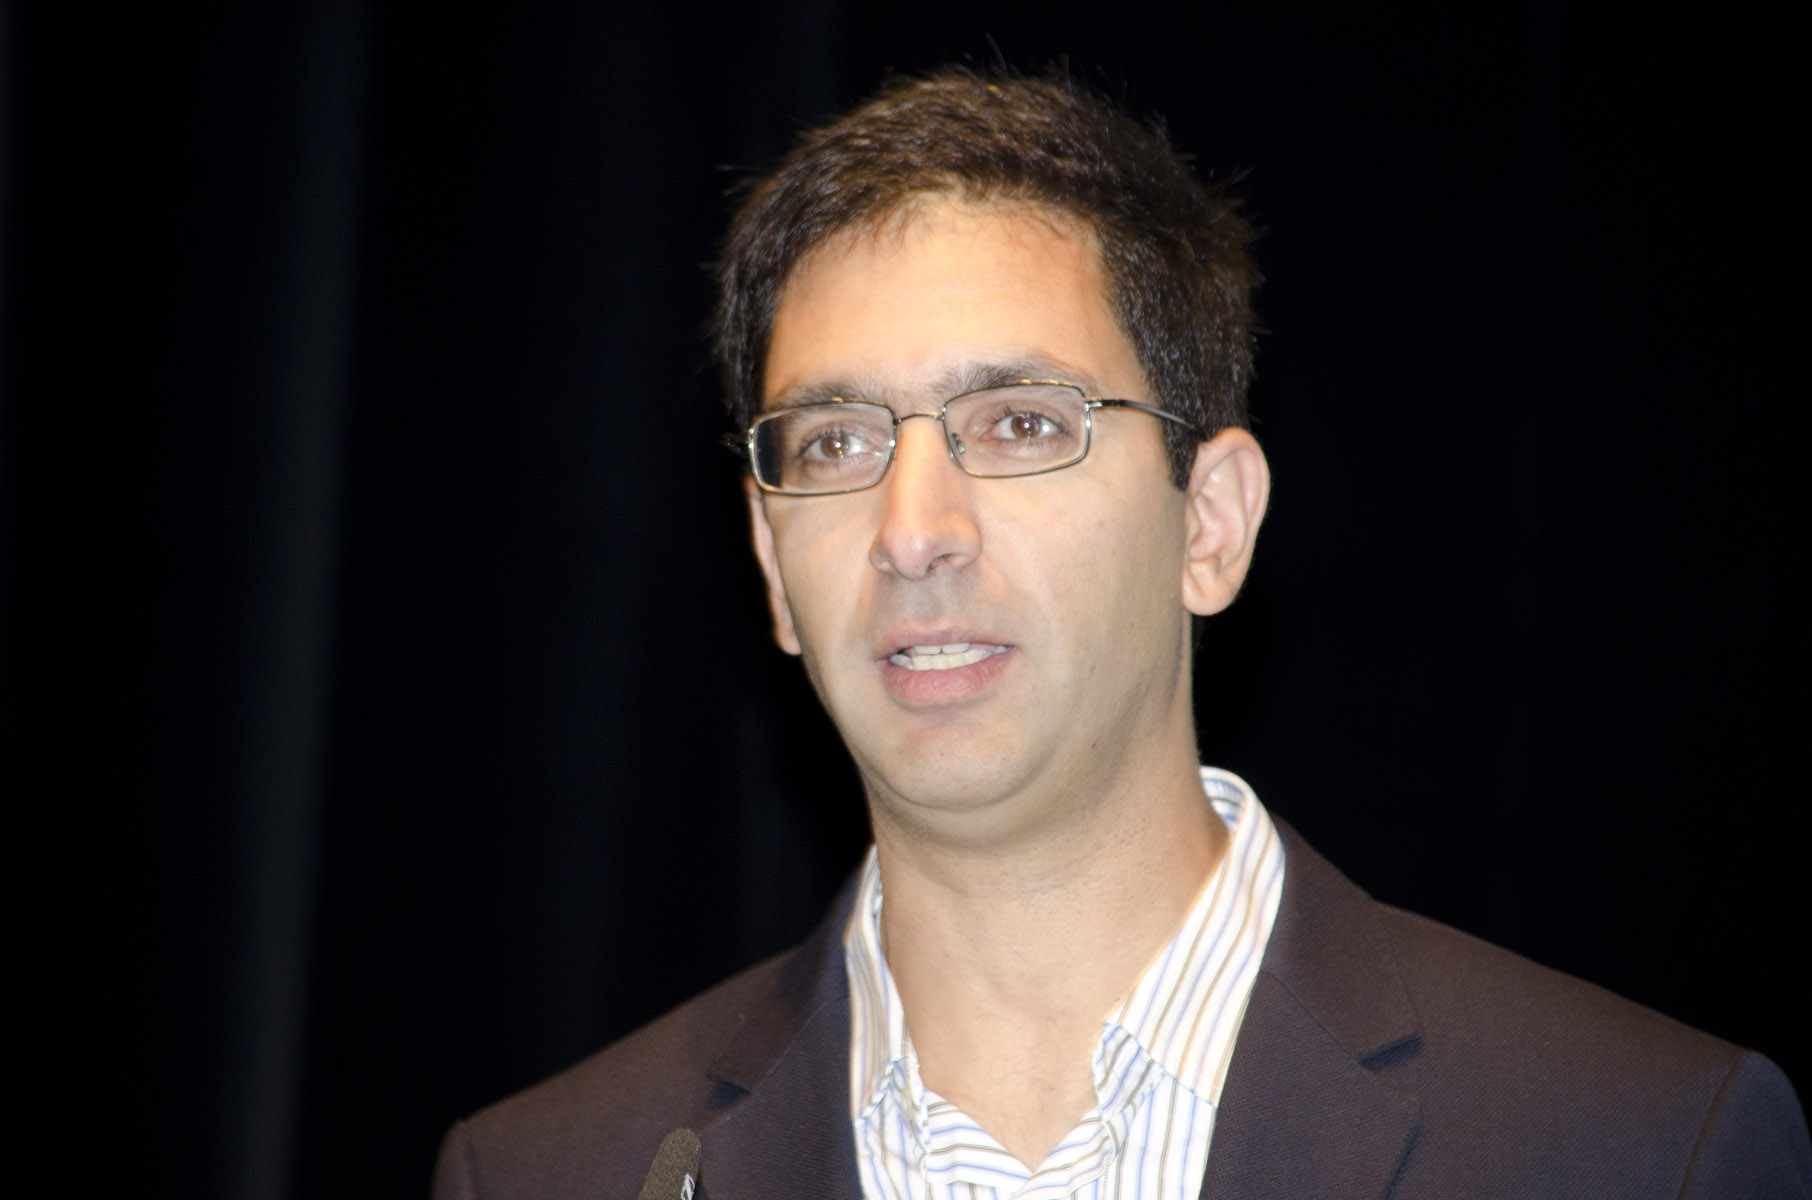 image of Lior Pachter